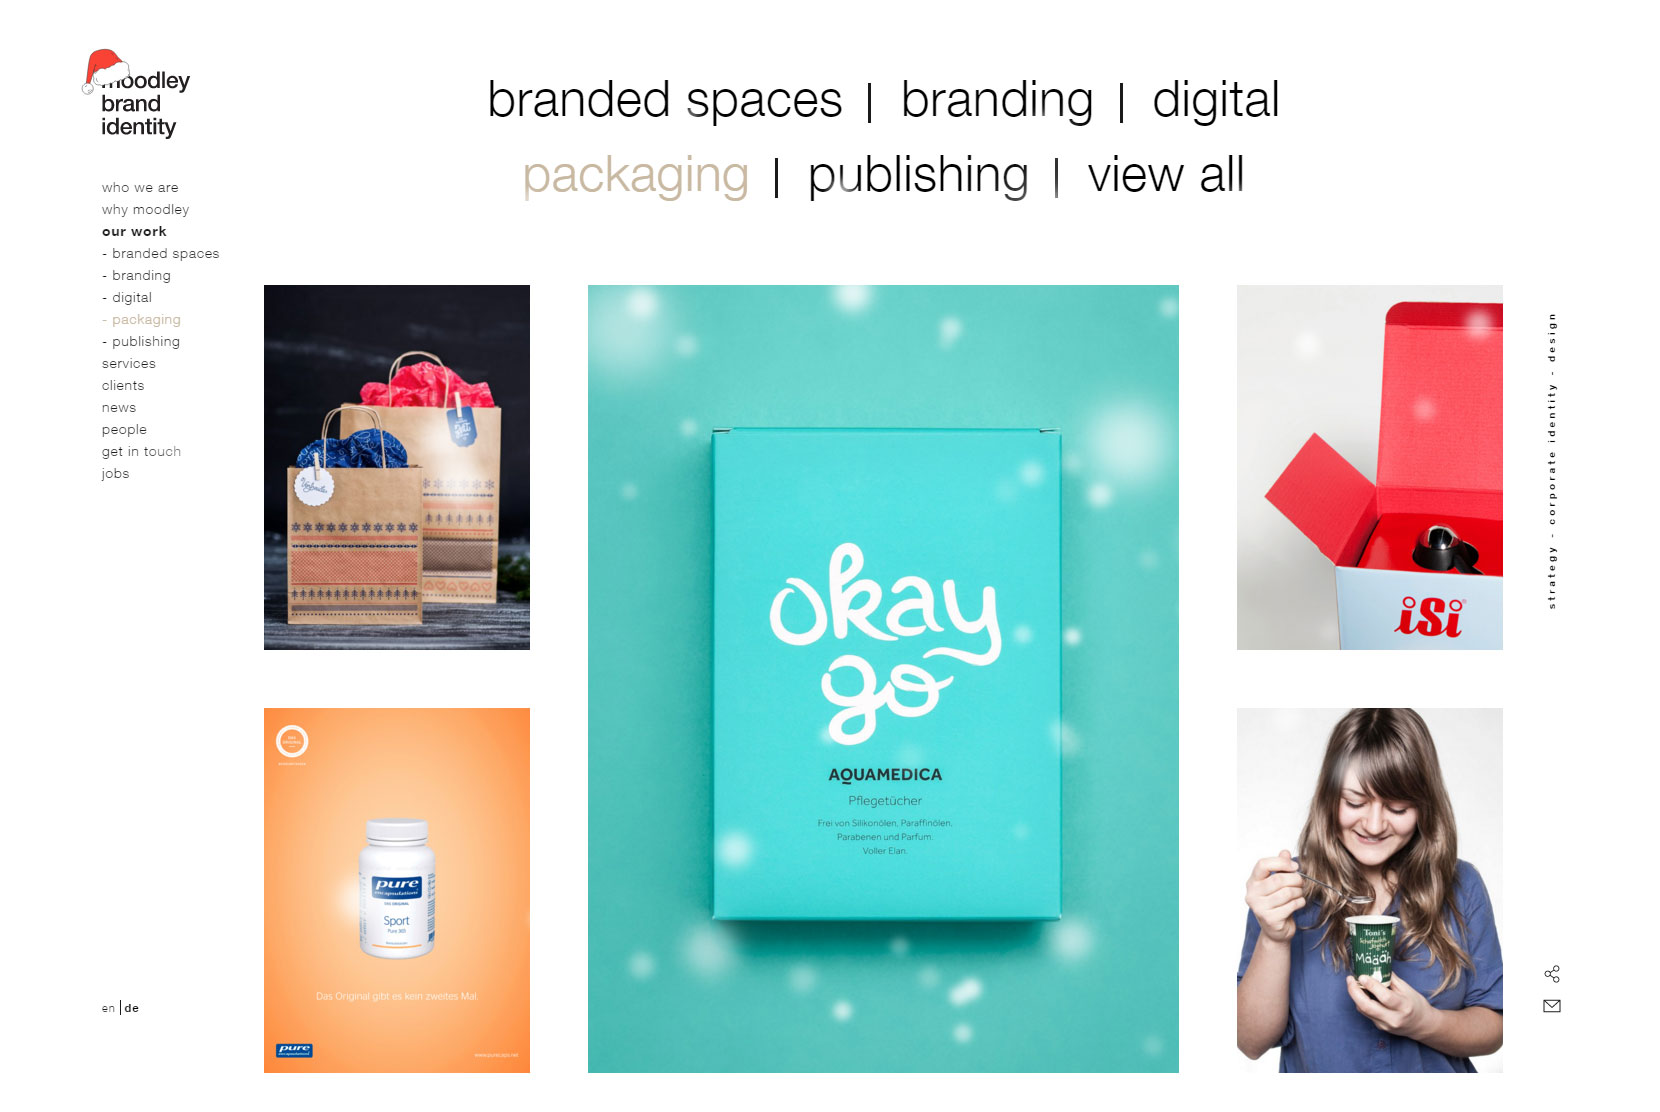 moodley brand identity - Website of the Day